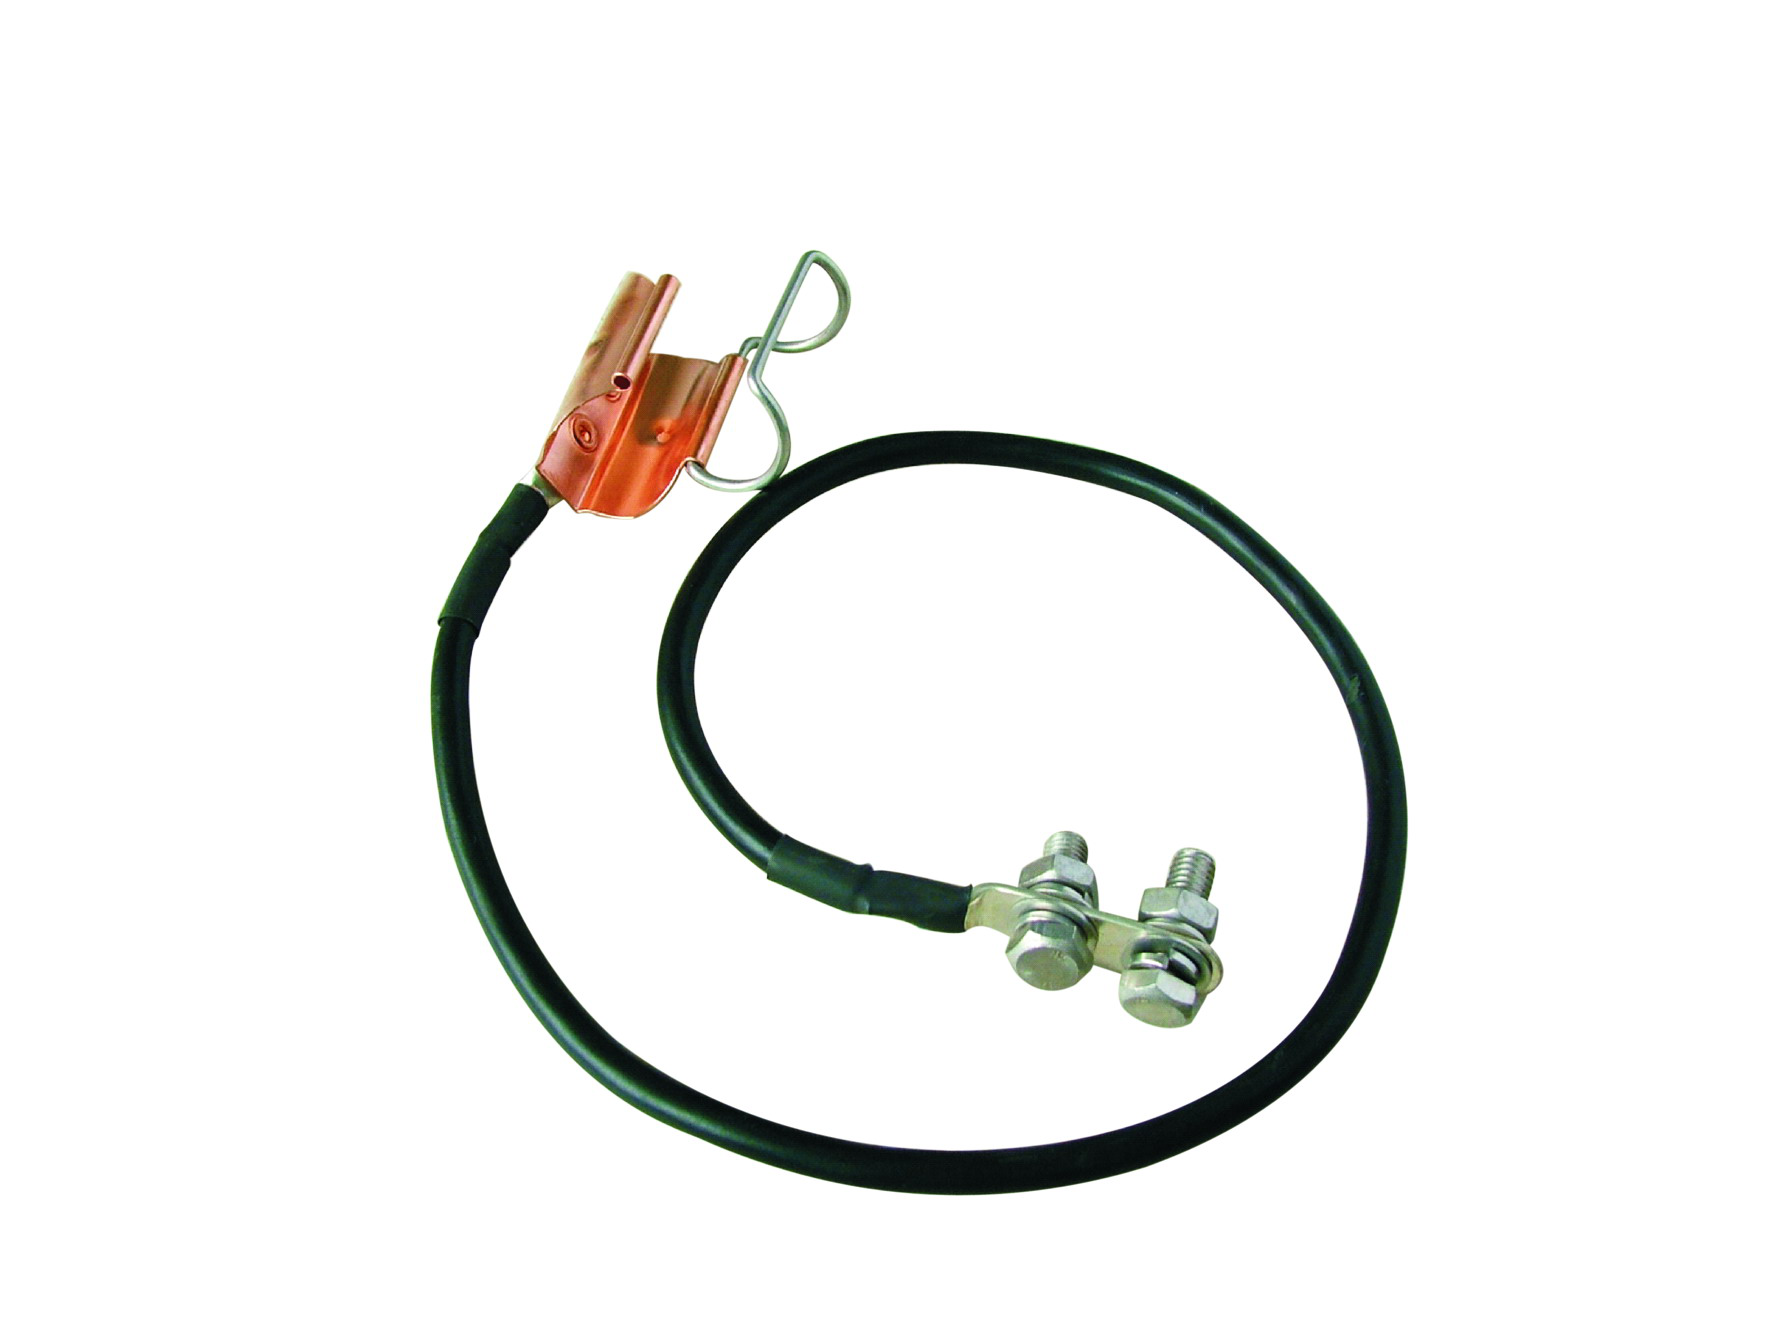 YOLYCOM outdoor Grounding Kit for 7/8 Corrugated Coaxial Cable Spring Type